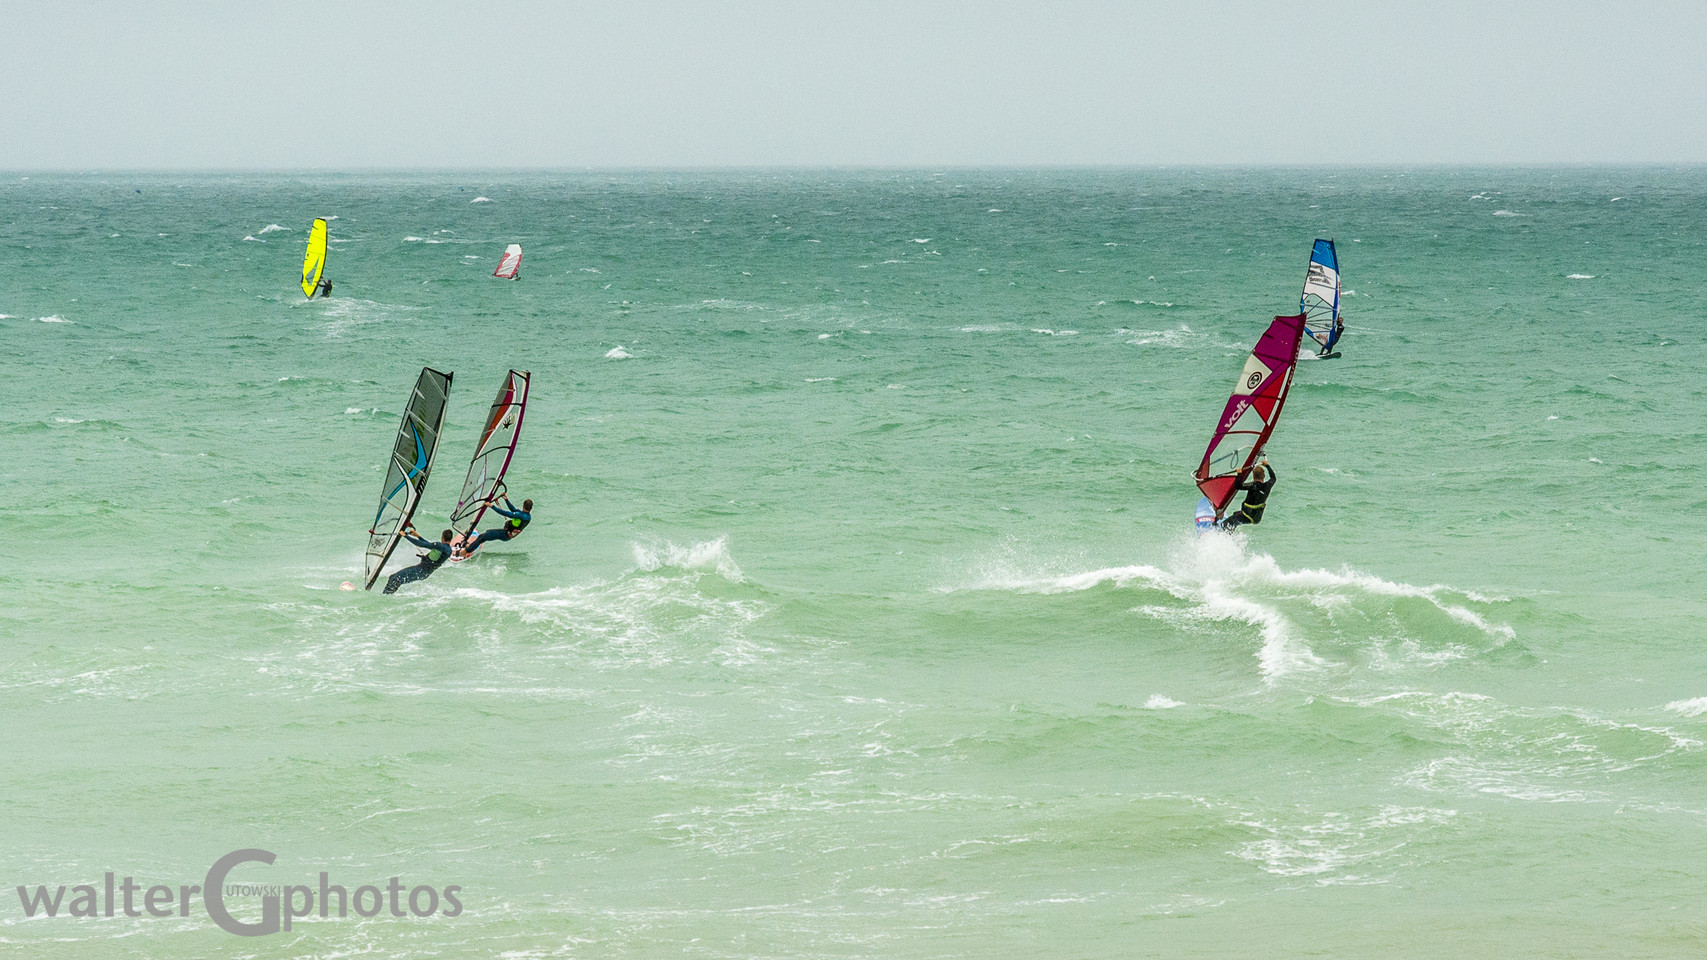 Wind surfing off Shoreham-by-Sea, England